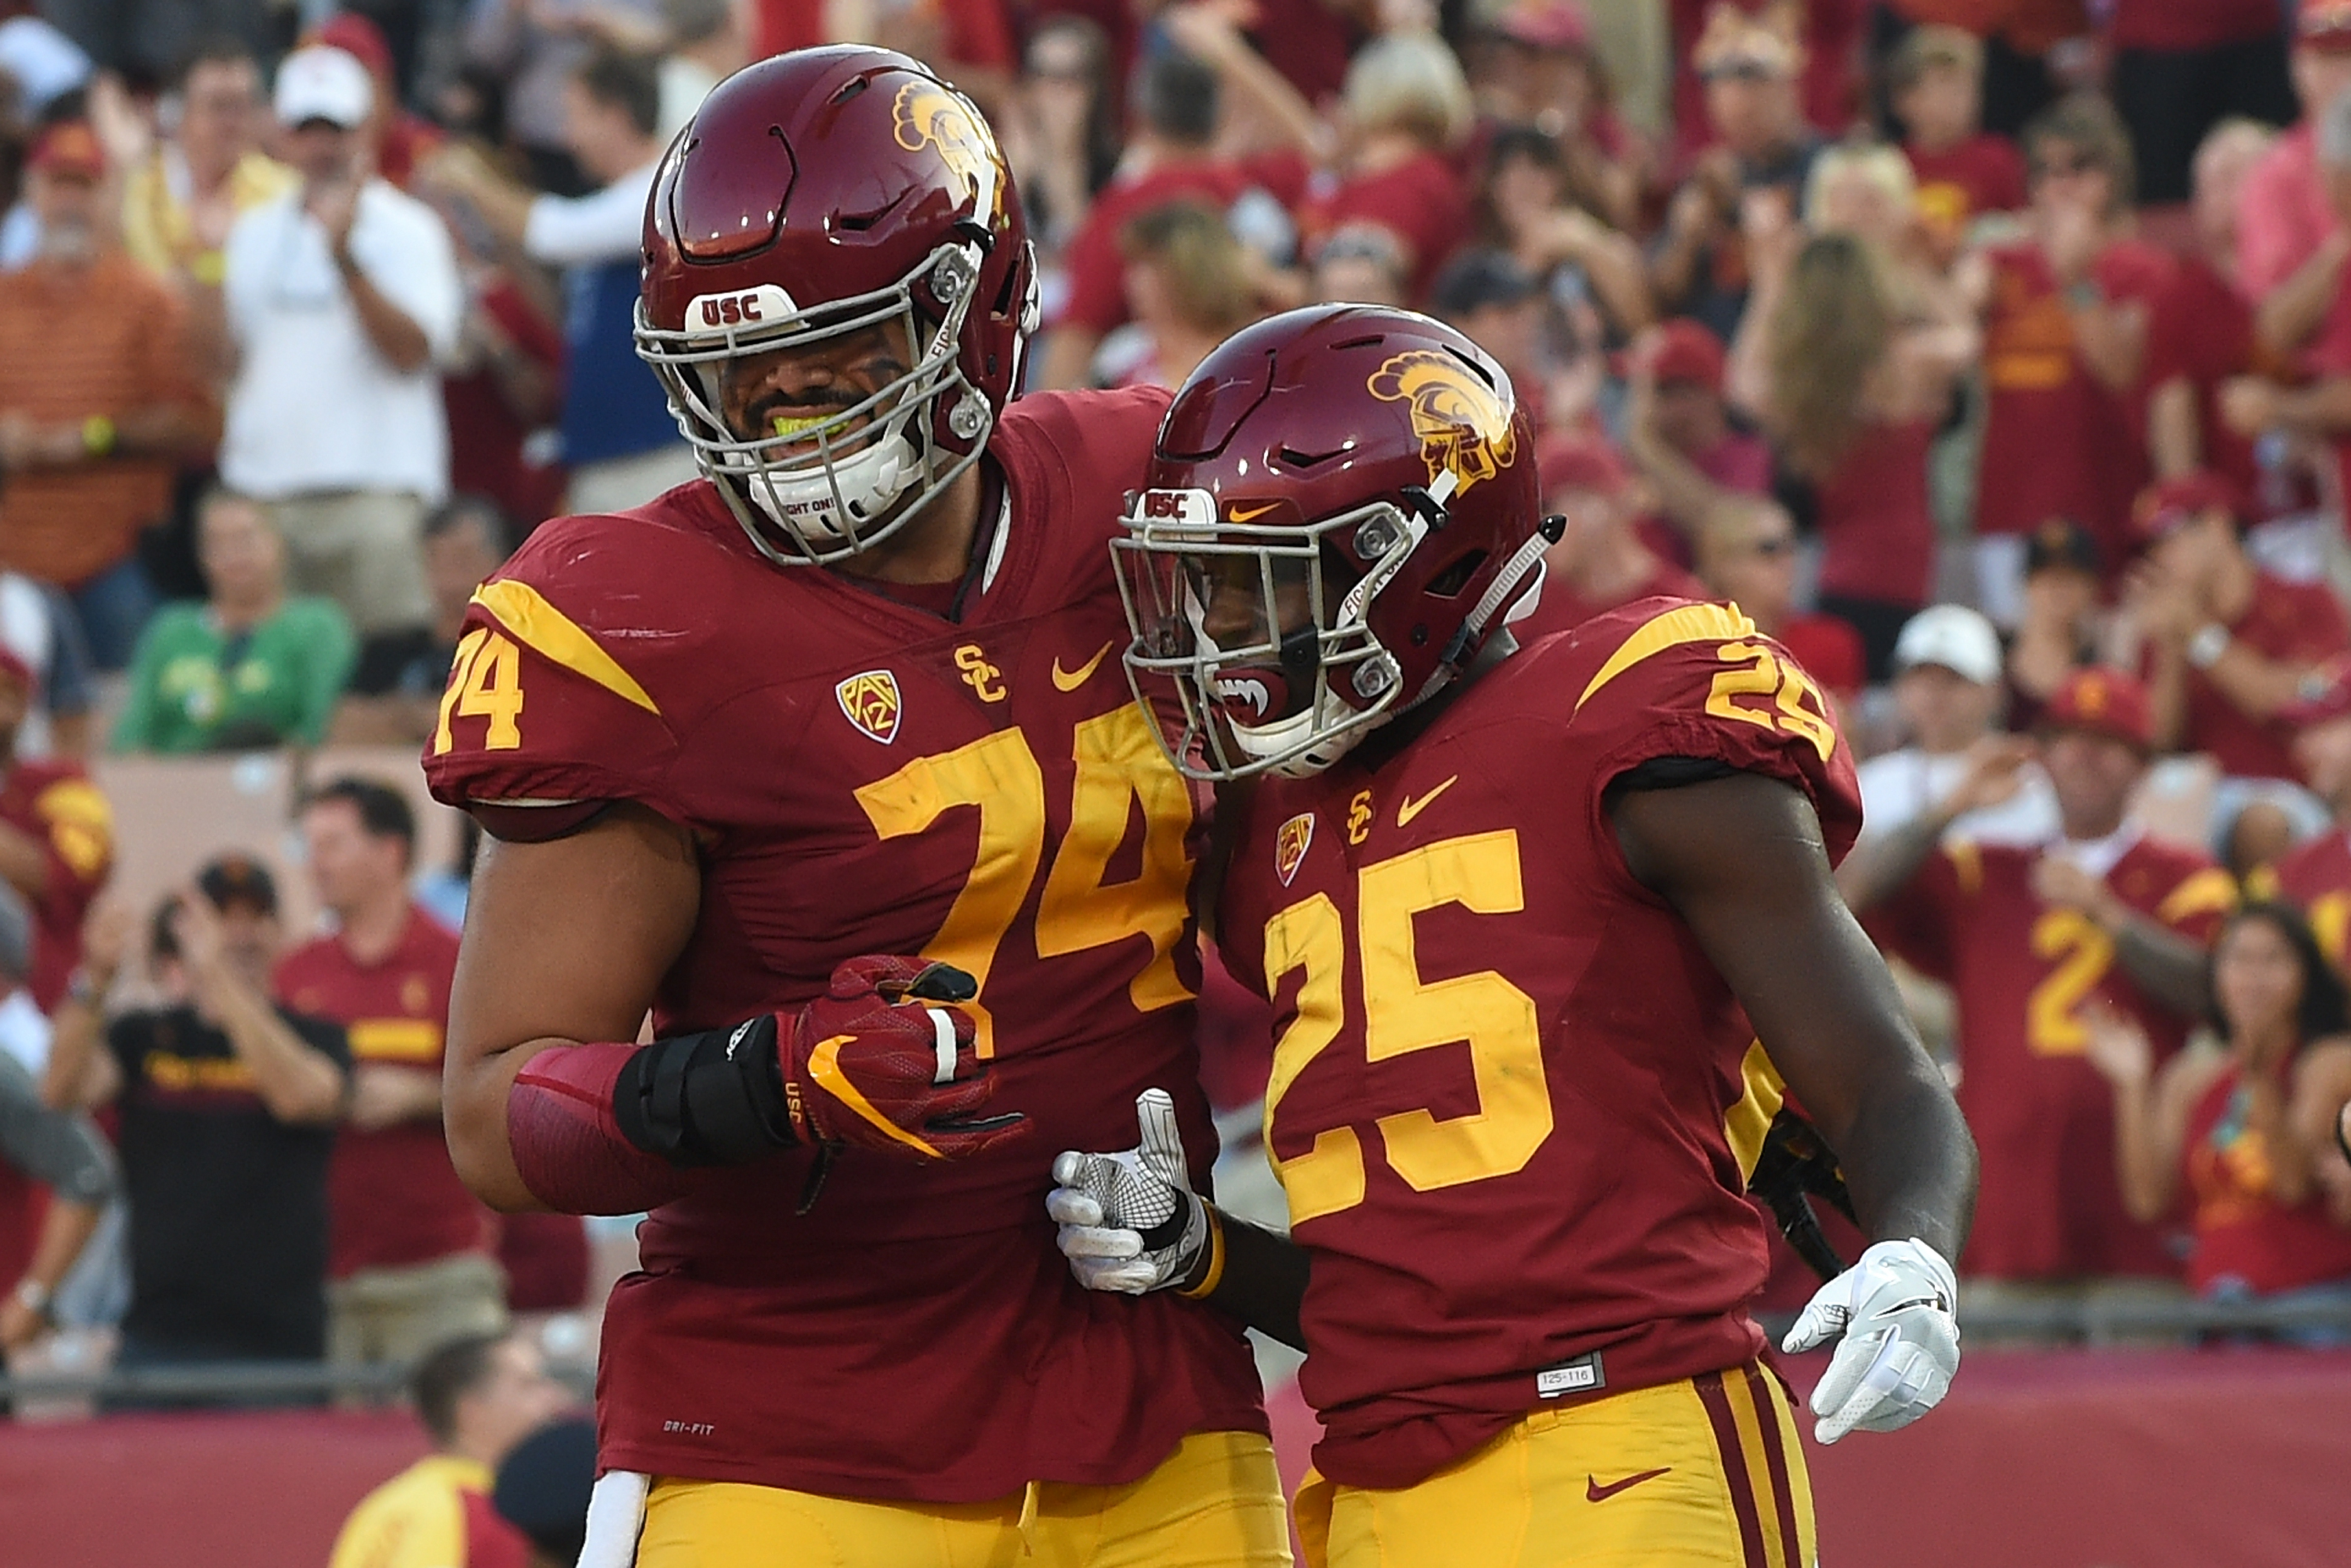 USC Football 2017 preseason Top 25 rankings round up